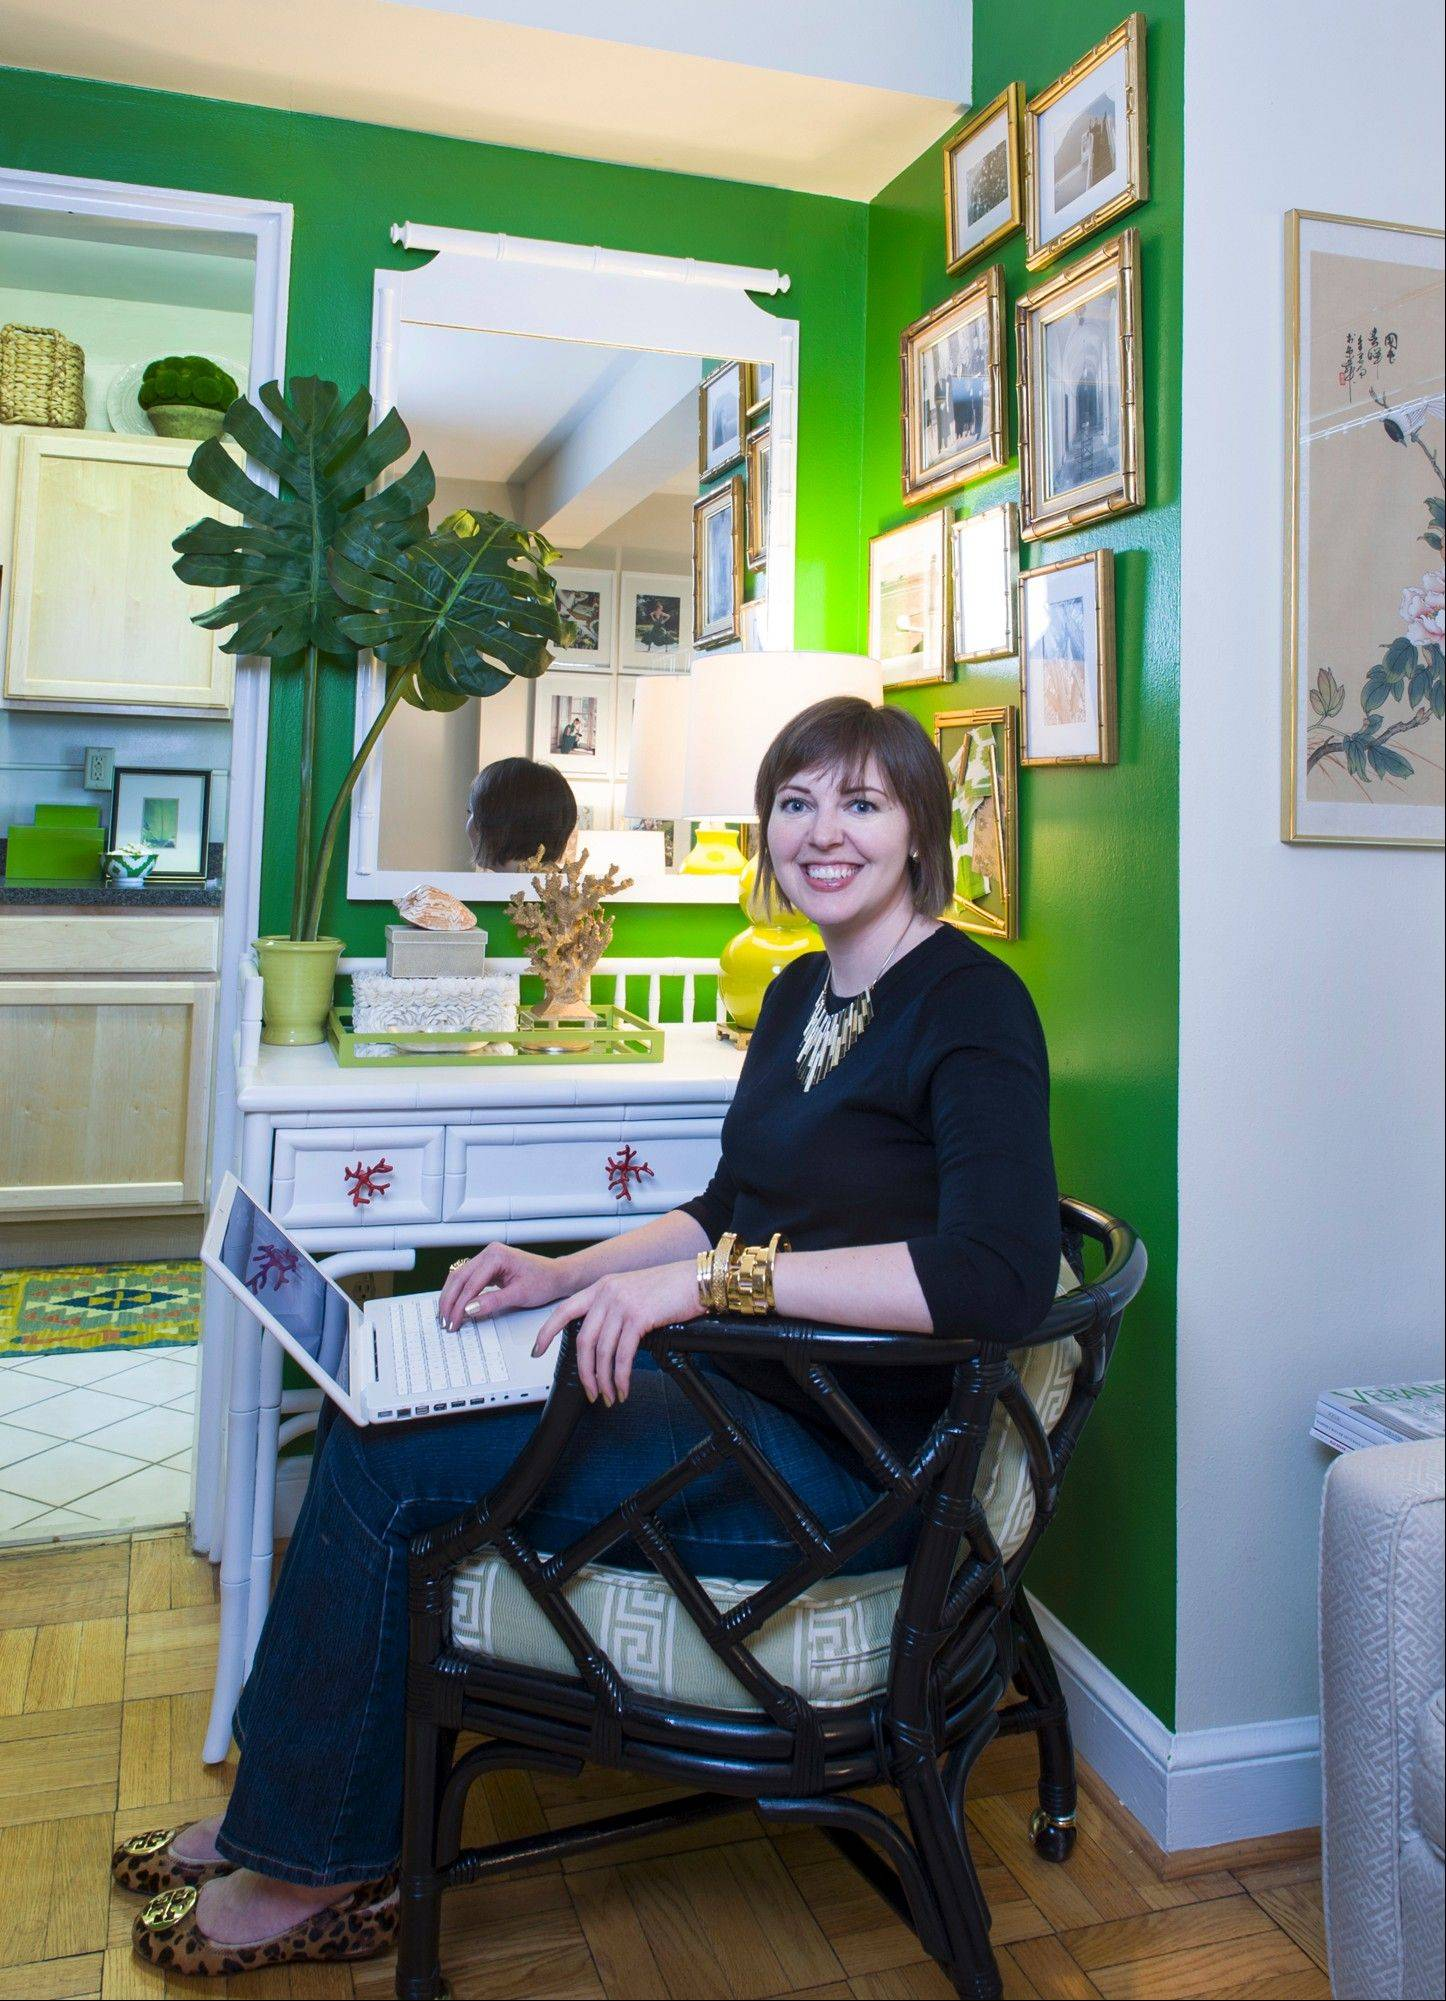 Skyla Freeman started her design blog, Sanity Fair, a few days after leaving her job at the White House in 2009. Her home office, a bamboo desk, is tucked into a corner of her studio apartment.